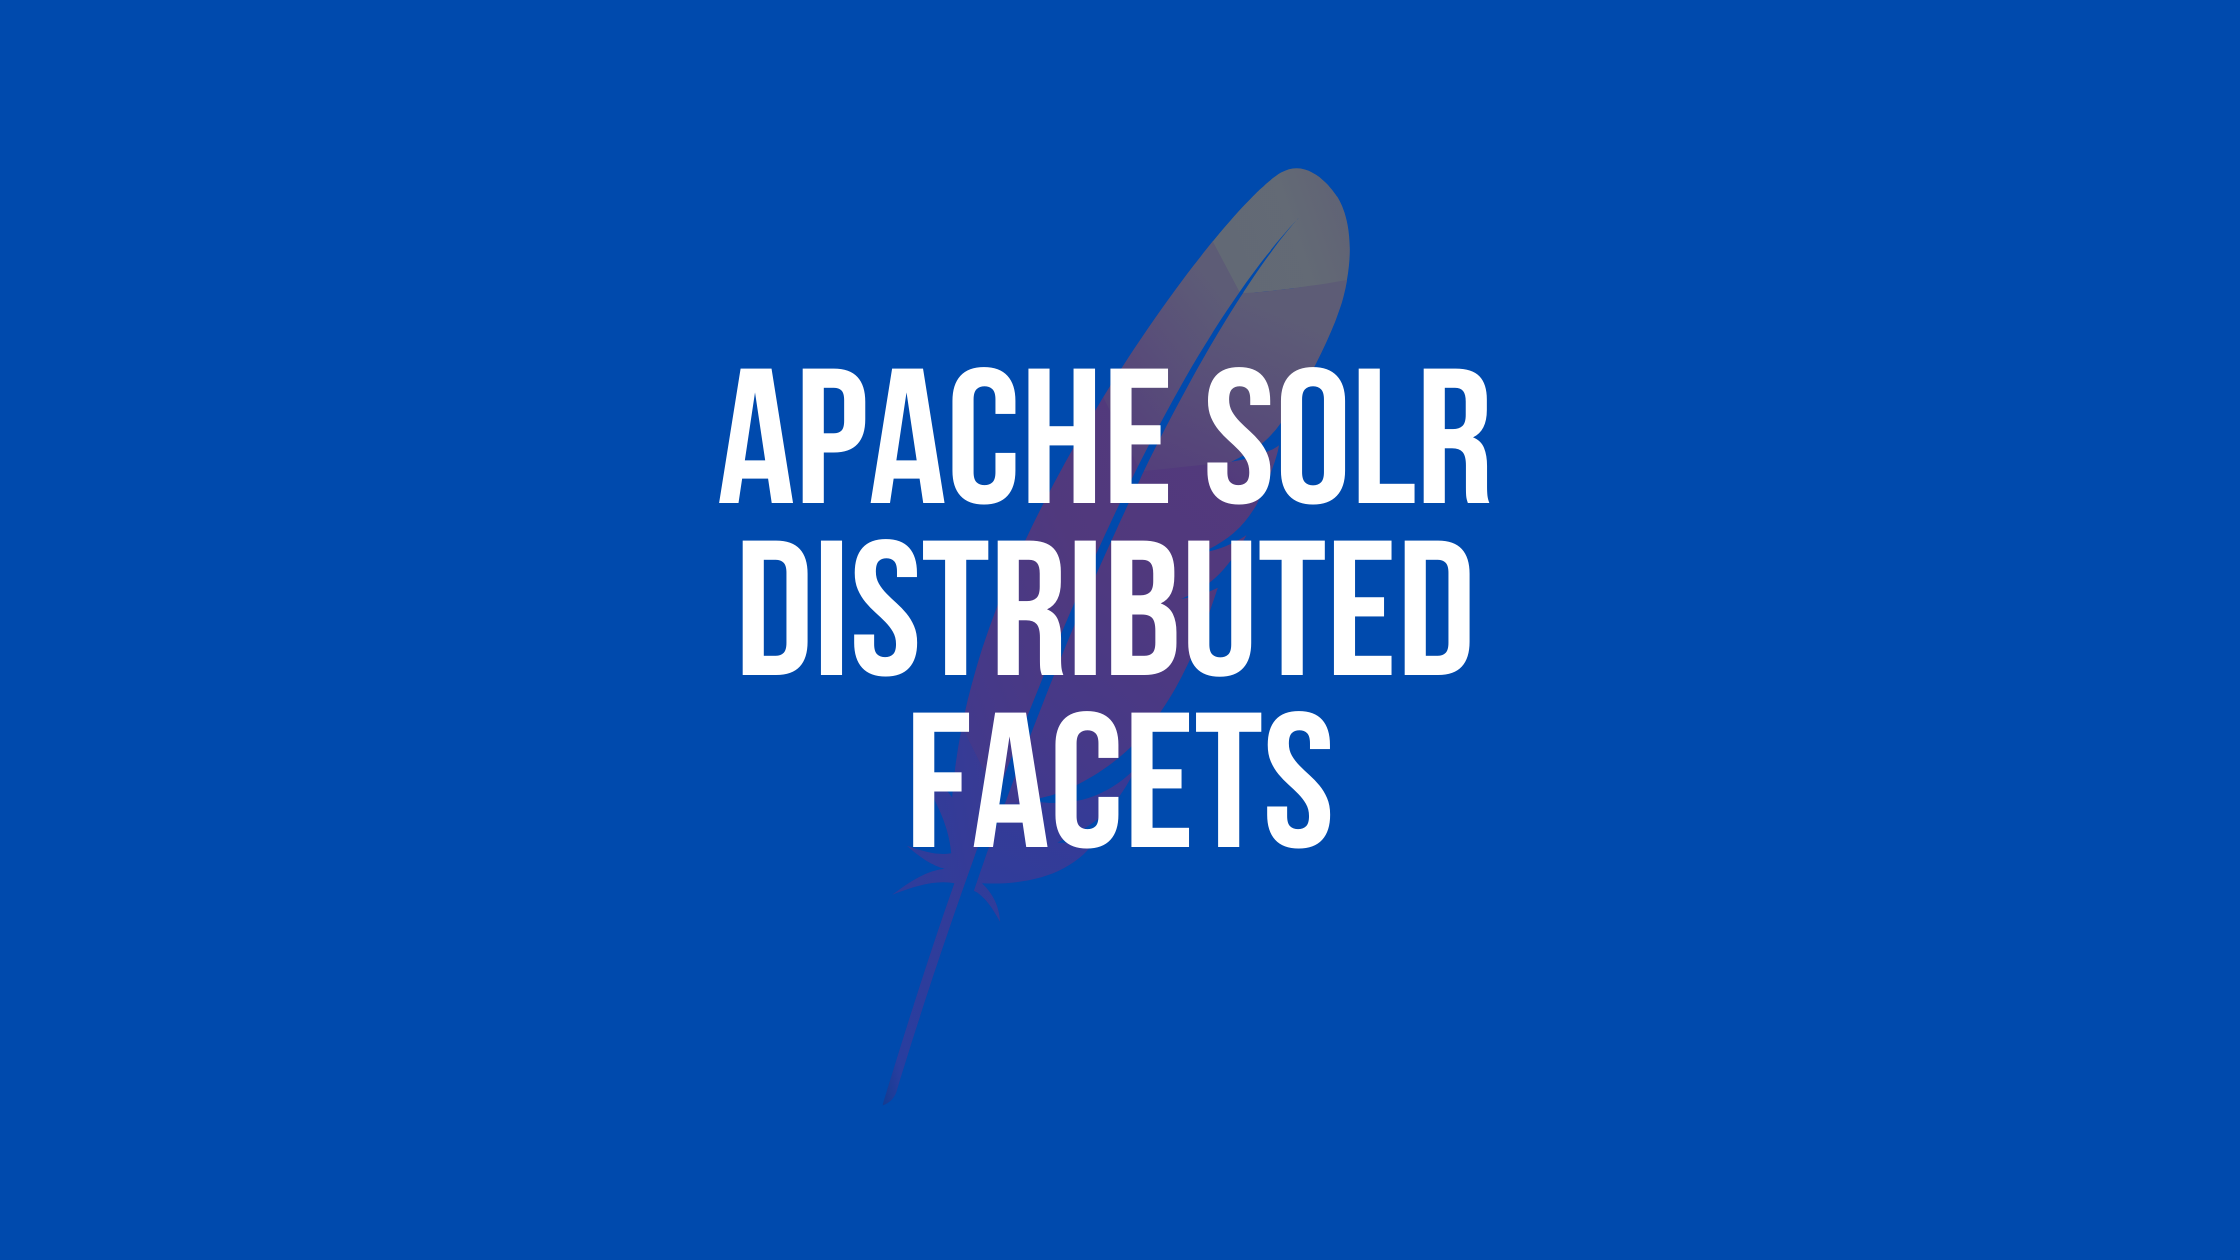 Apache Solr Distributed Facets